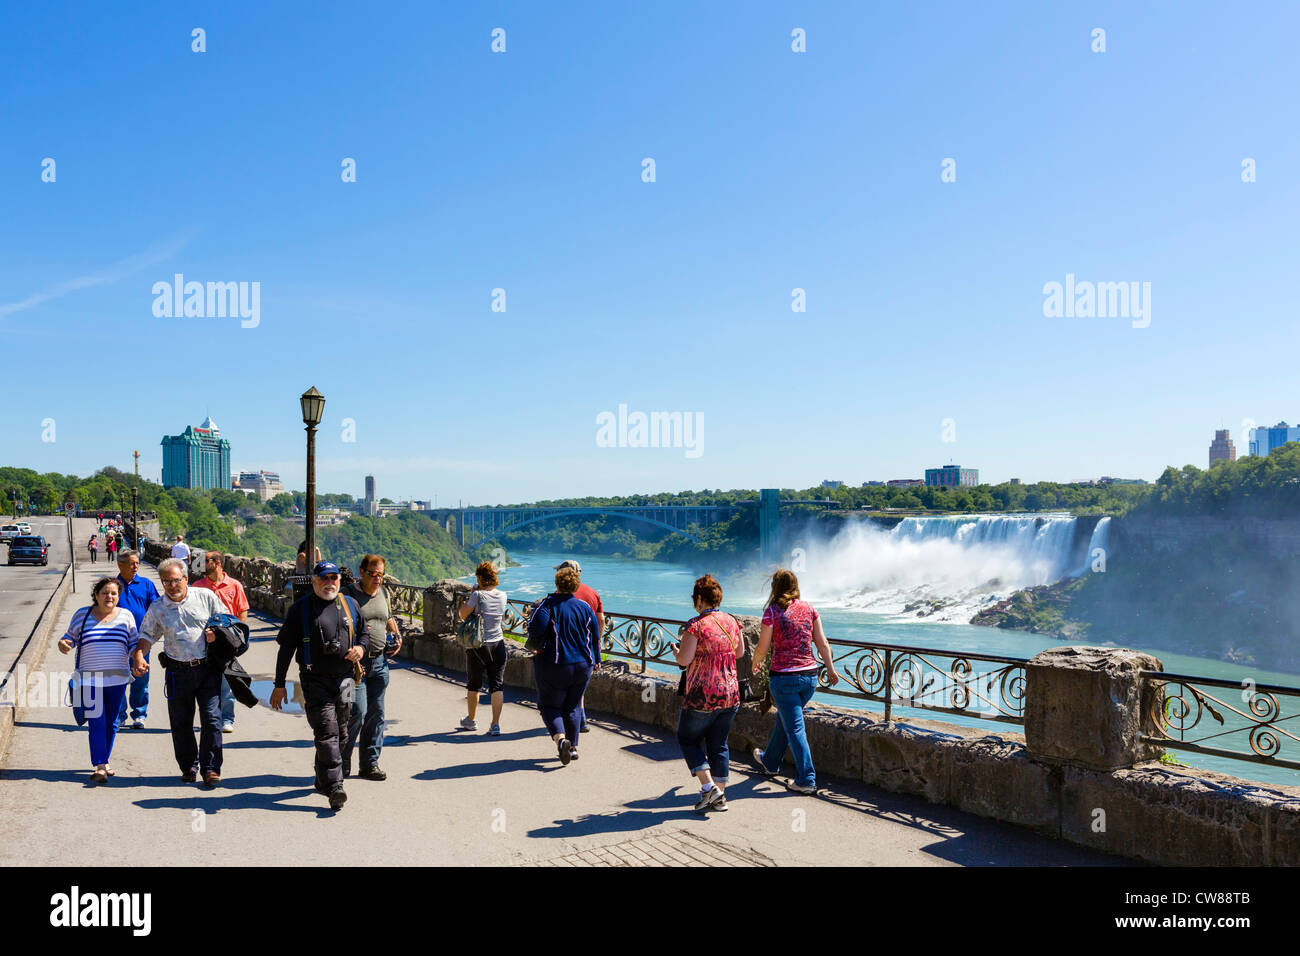 Tourists on path with the American Falls behind, Niagara Falls , Ontario, Canada - Stock Image